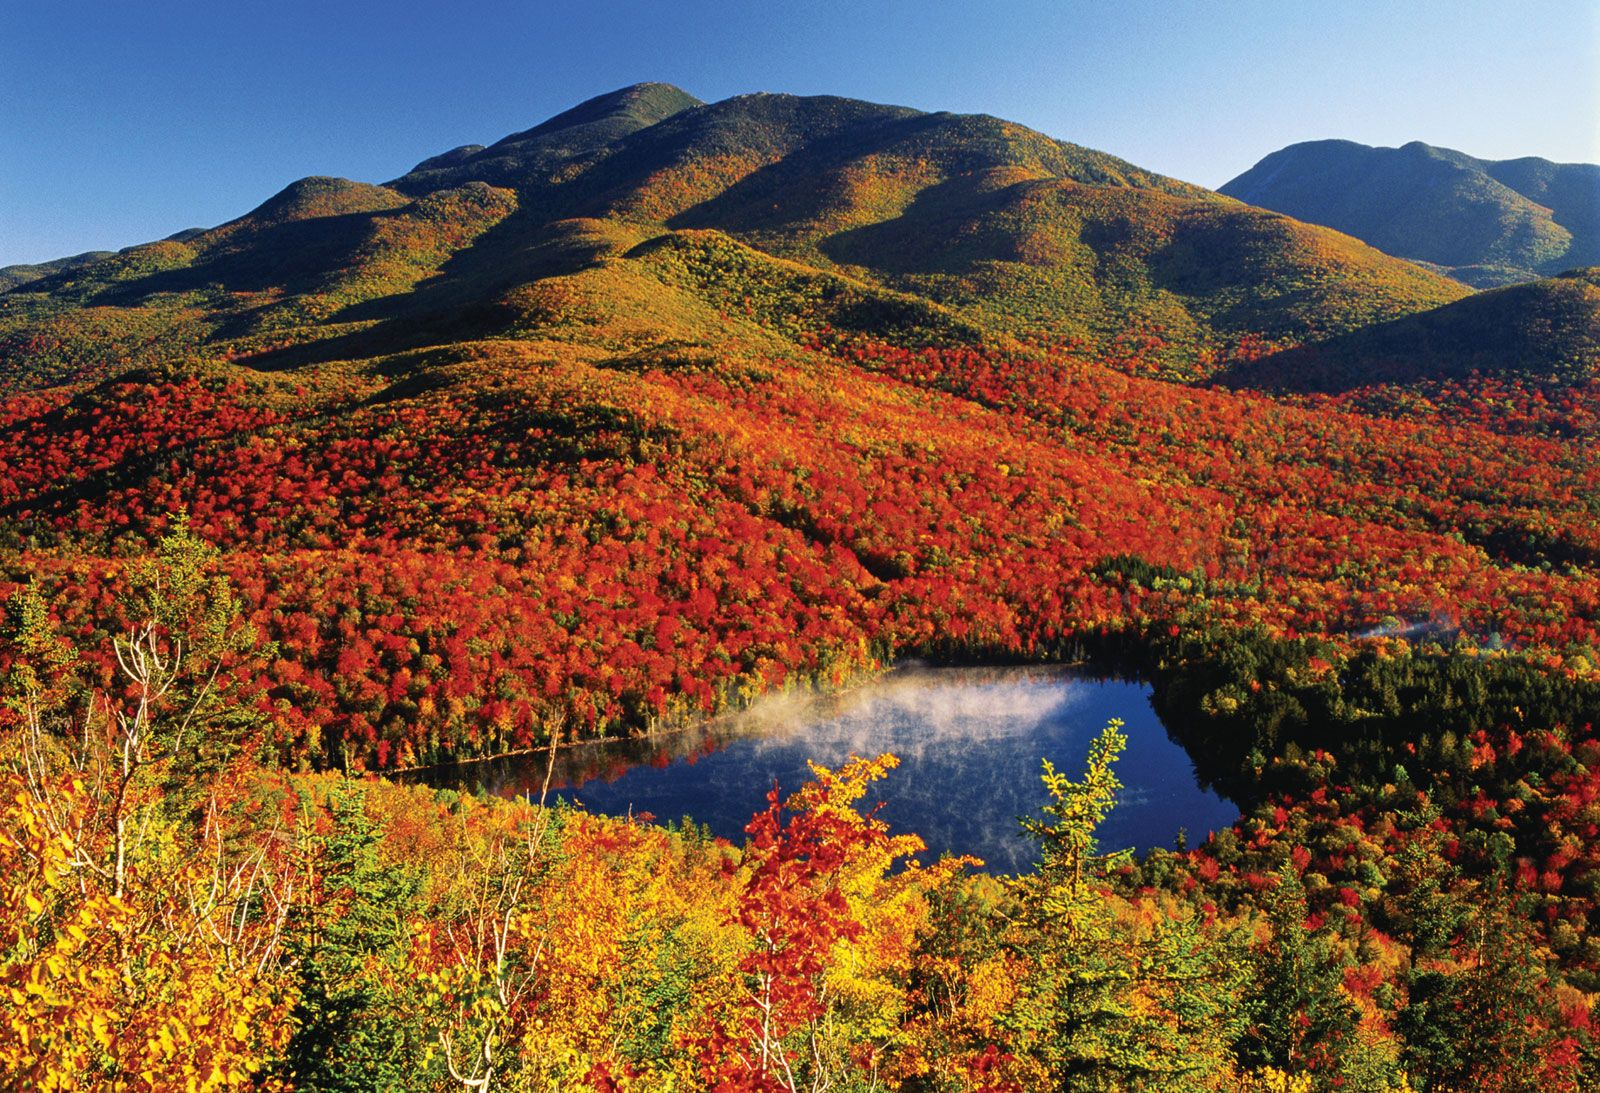 The Adirondack Mountains In Autumn